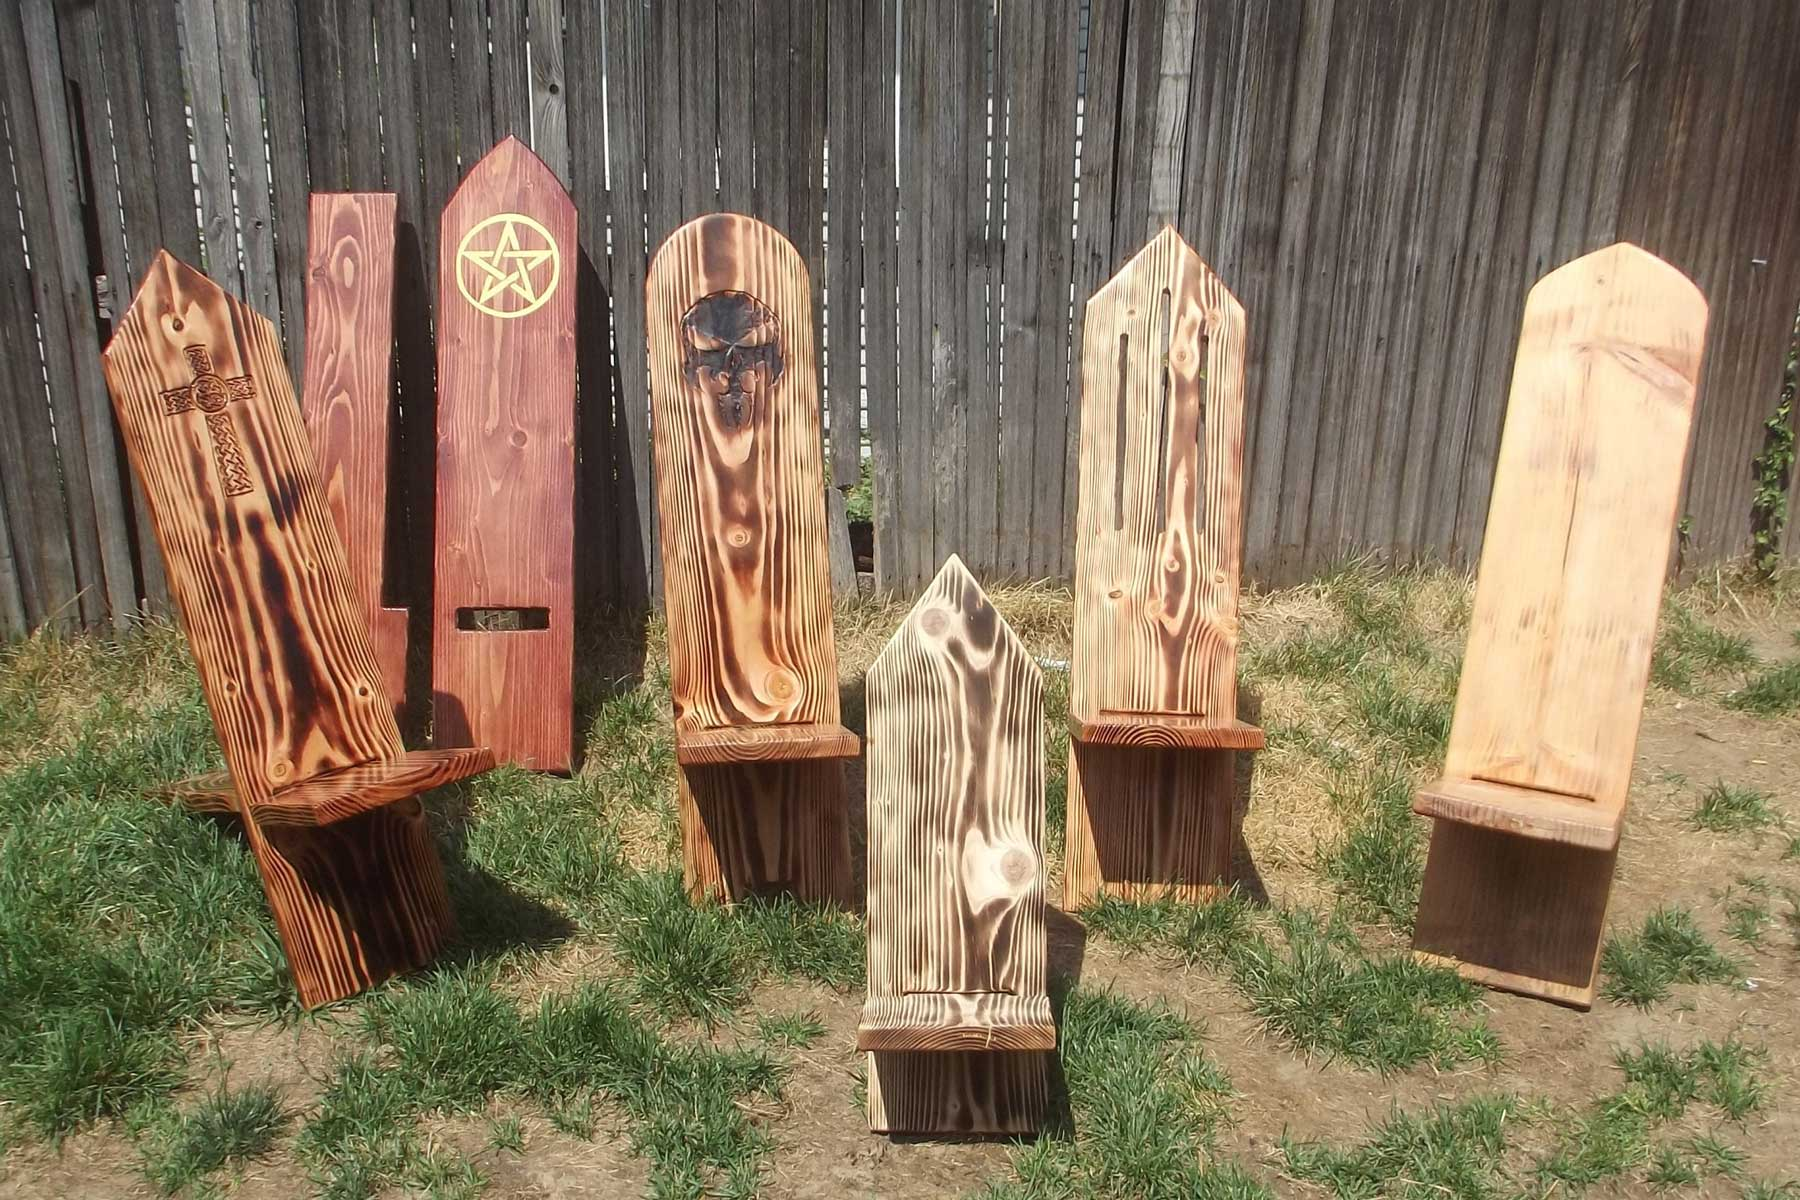 Wooden Stargazing 'Viking' Chairs from Etsy